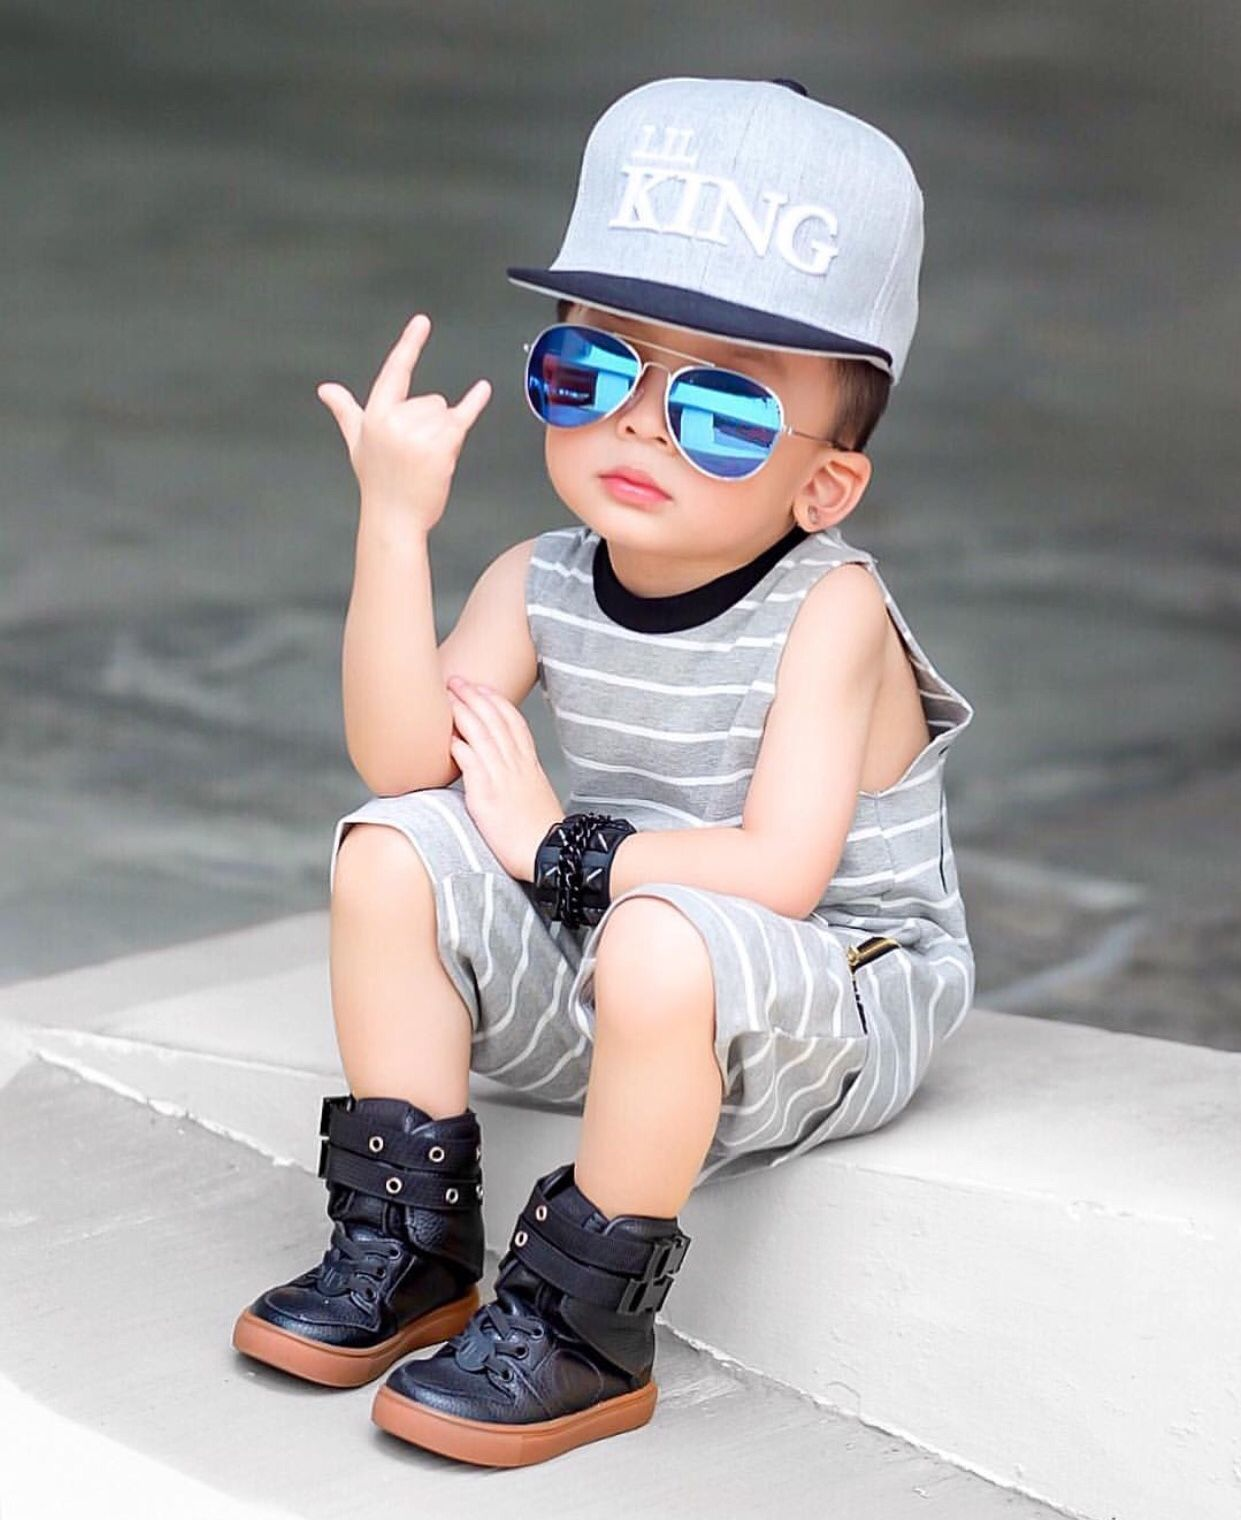 Pin By Valen Arenas On I Kid You Not Stylish Little Boys Cute Baby Boy Outfits Cute Baby Boy Images